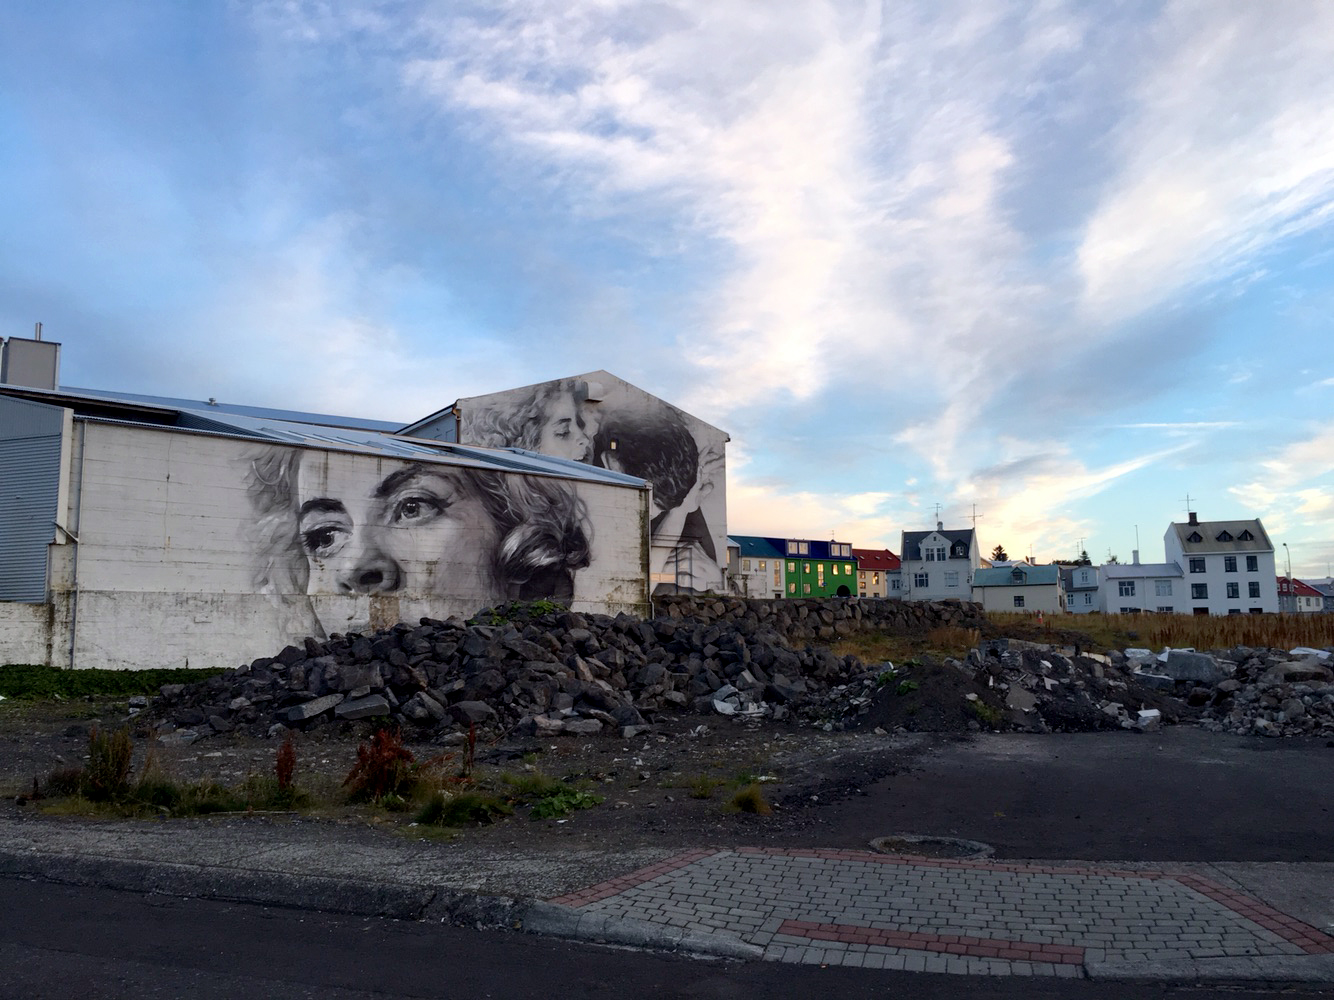 Murals on buildings near the harbor.